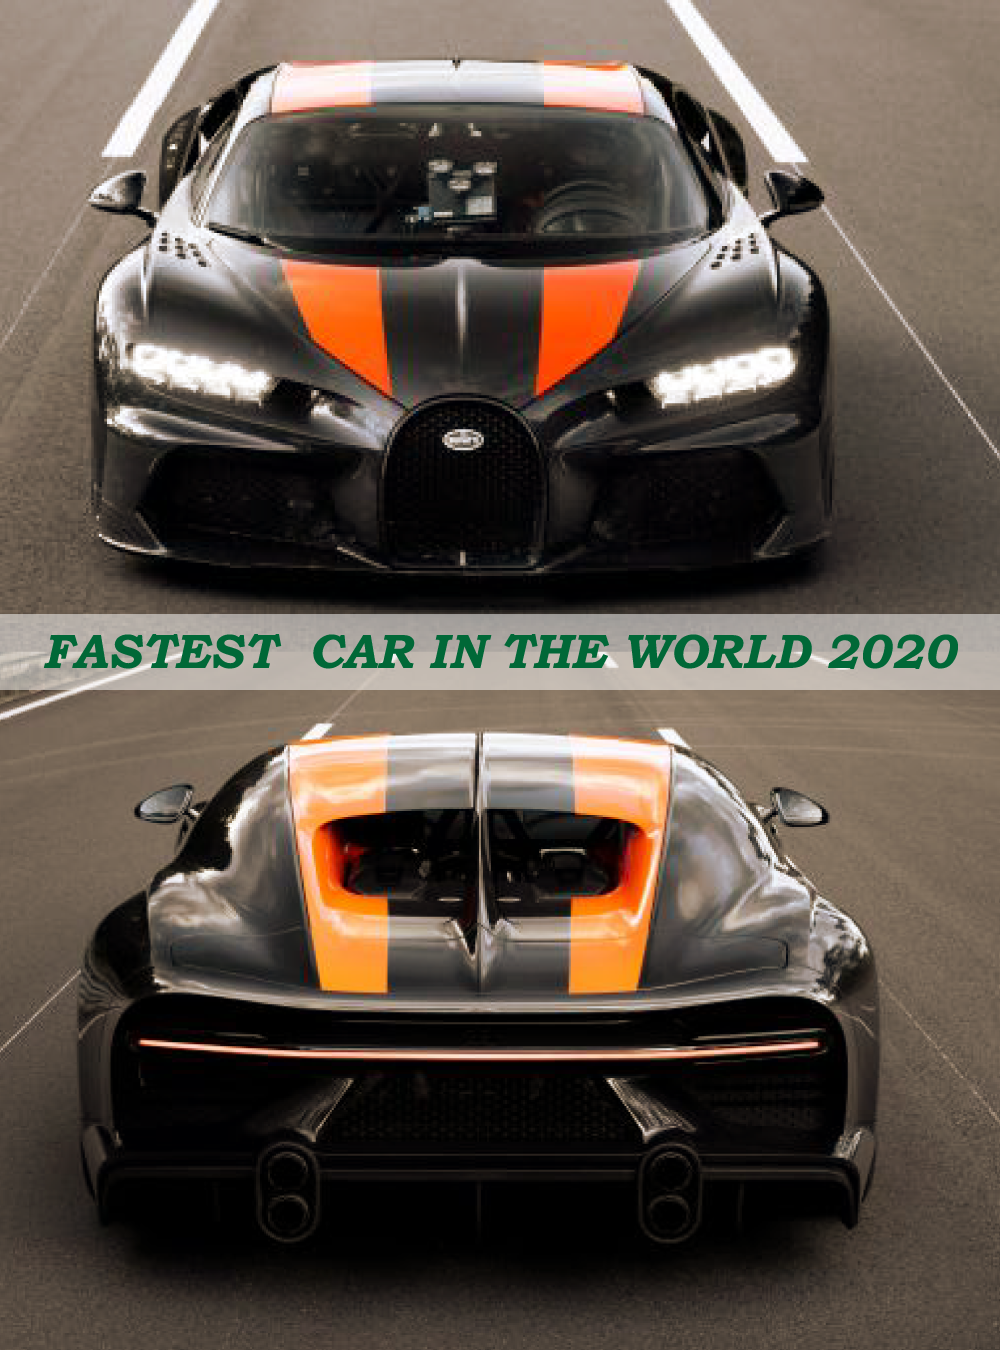 Fastest Car In The World 2020 In 2020 Car In The World Cars Bugatti Veyron Fast Cars